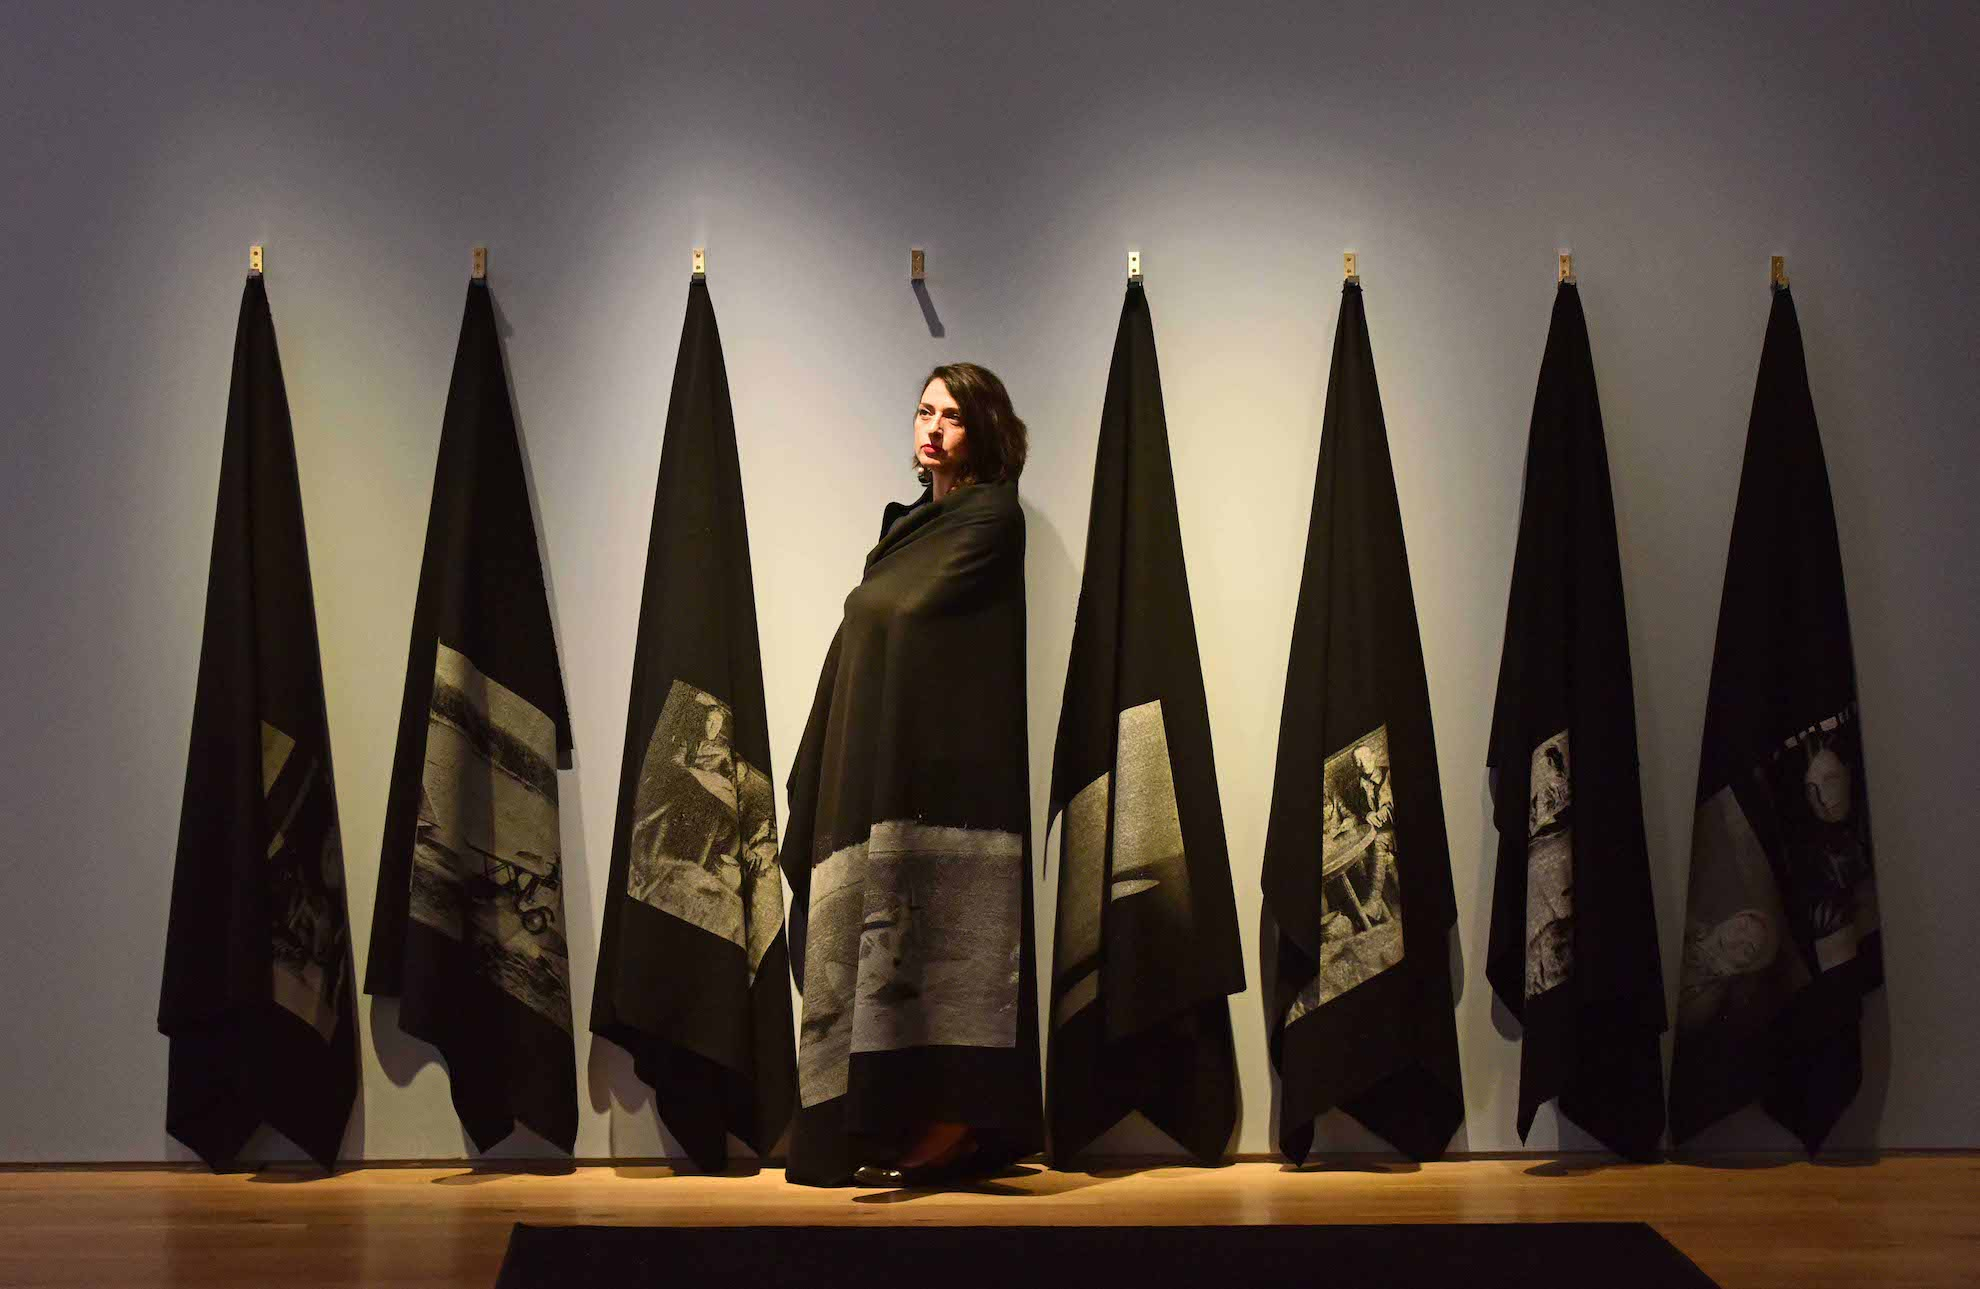 Blankets Project   2018 Eight felt blankets, screen print, metal hinges Overall dimensions 10 metres 1.9 metres by 20cm  The Sea is the Limit  exhibition at York Art Gallery, installation view